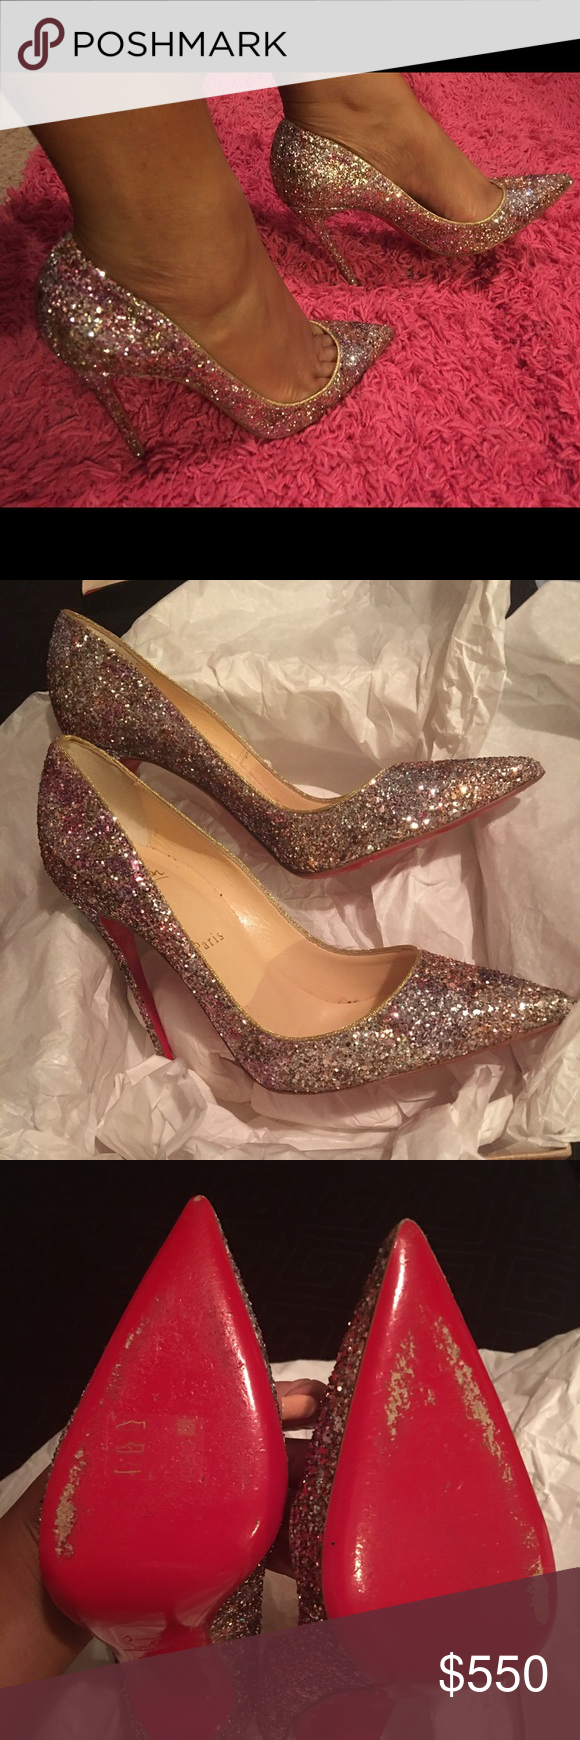 Christian Louboutin So Kate Glitter Pumps 100% authentic GORGEOUS Christian Louboutin So Kate Glitter Pumps. Worn one night for no more than 2 hours. Like New. With box and dustbags Christian Louboutin Shoes Heels